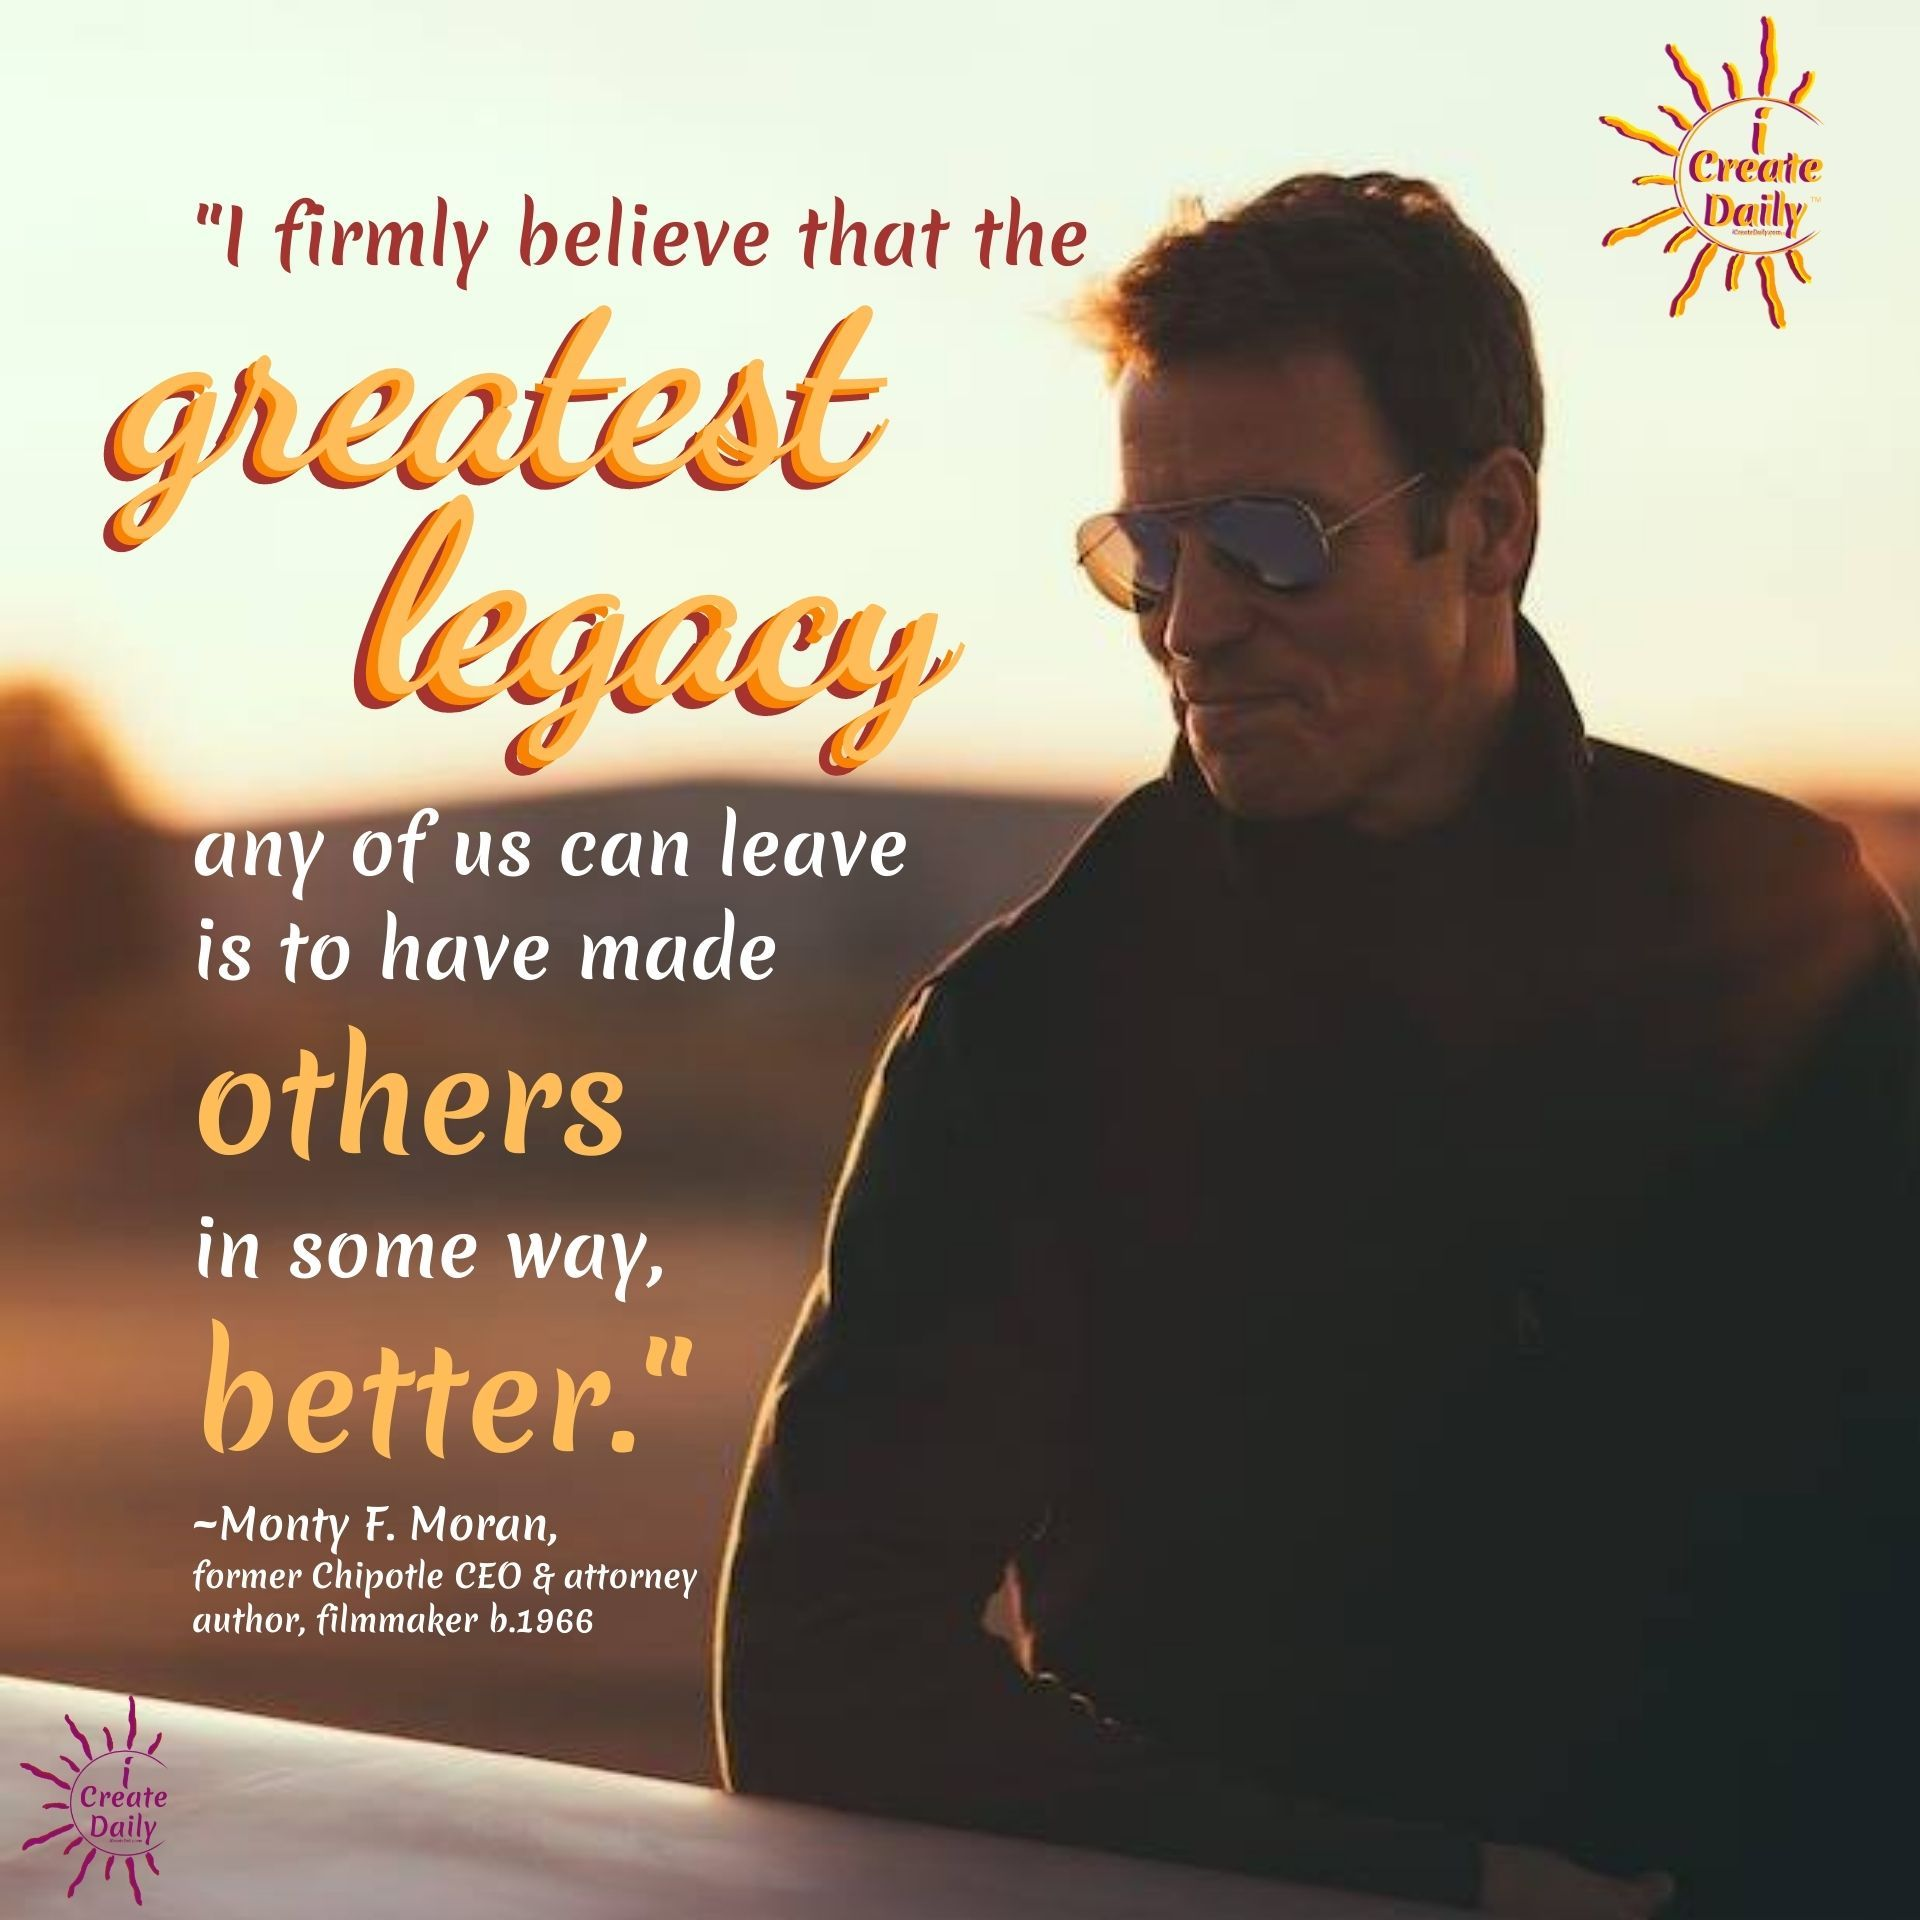 MONTY MORAN QUOTE ON GREATEST LEGACY #MontyMoran #MontyMoranQuote #LeadershipQuote #LegacyQuteo #GreatestLegacy #iCreateDaily